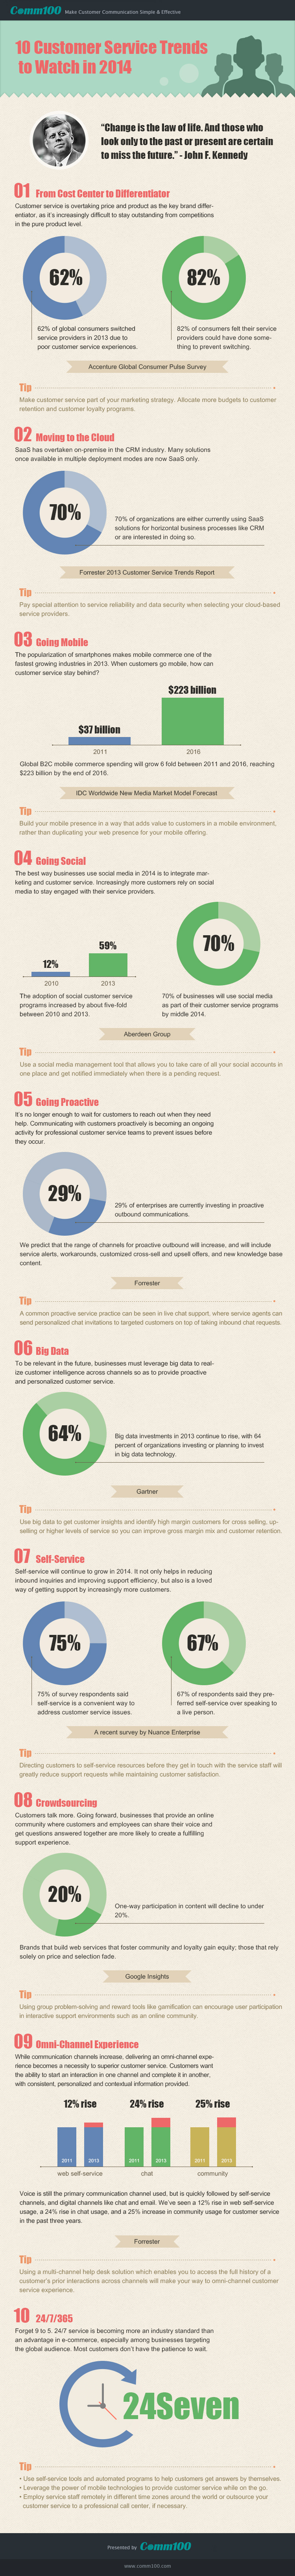 10-Customer-Service-Trends-to-Watch-in-2014